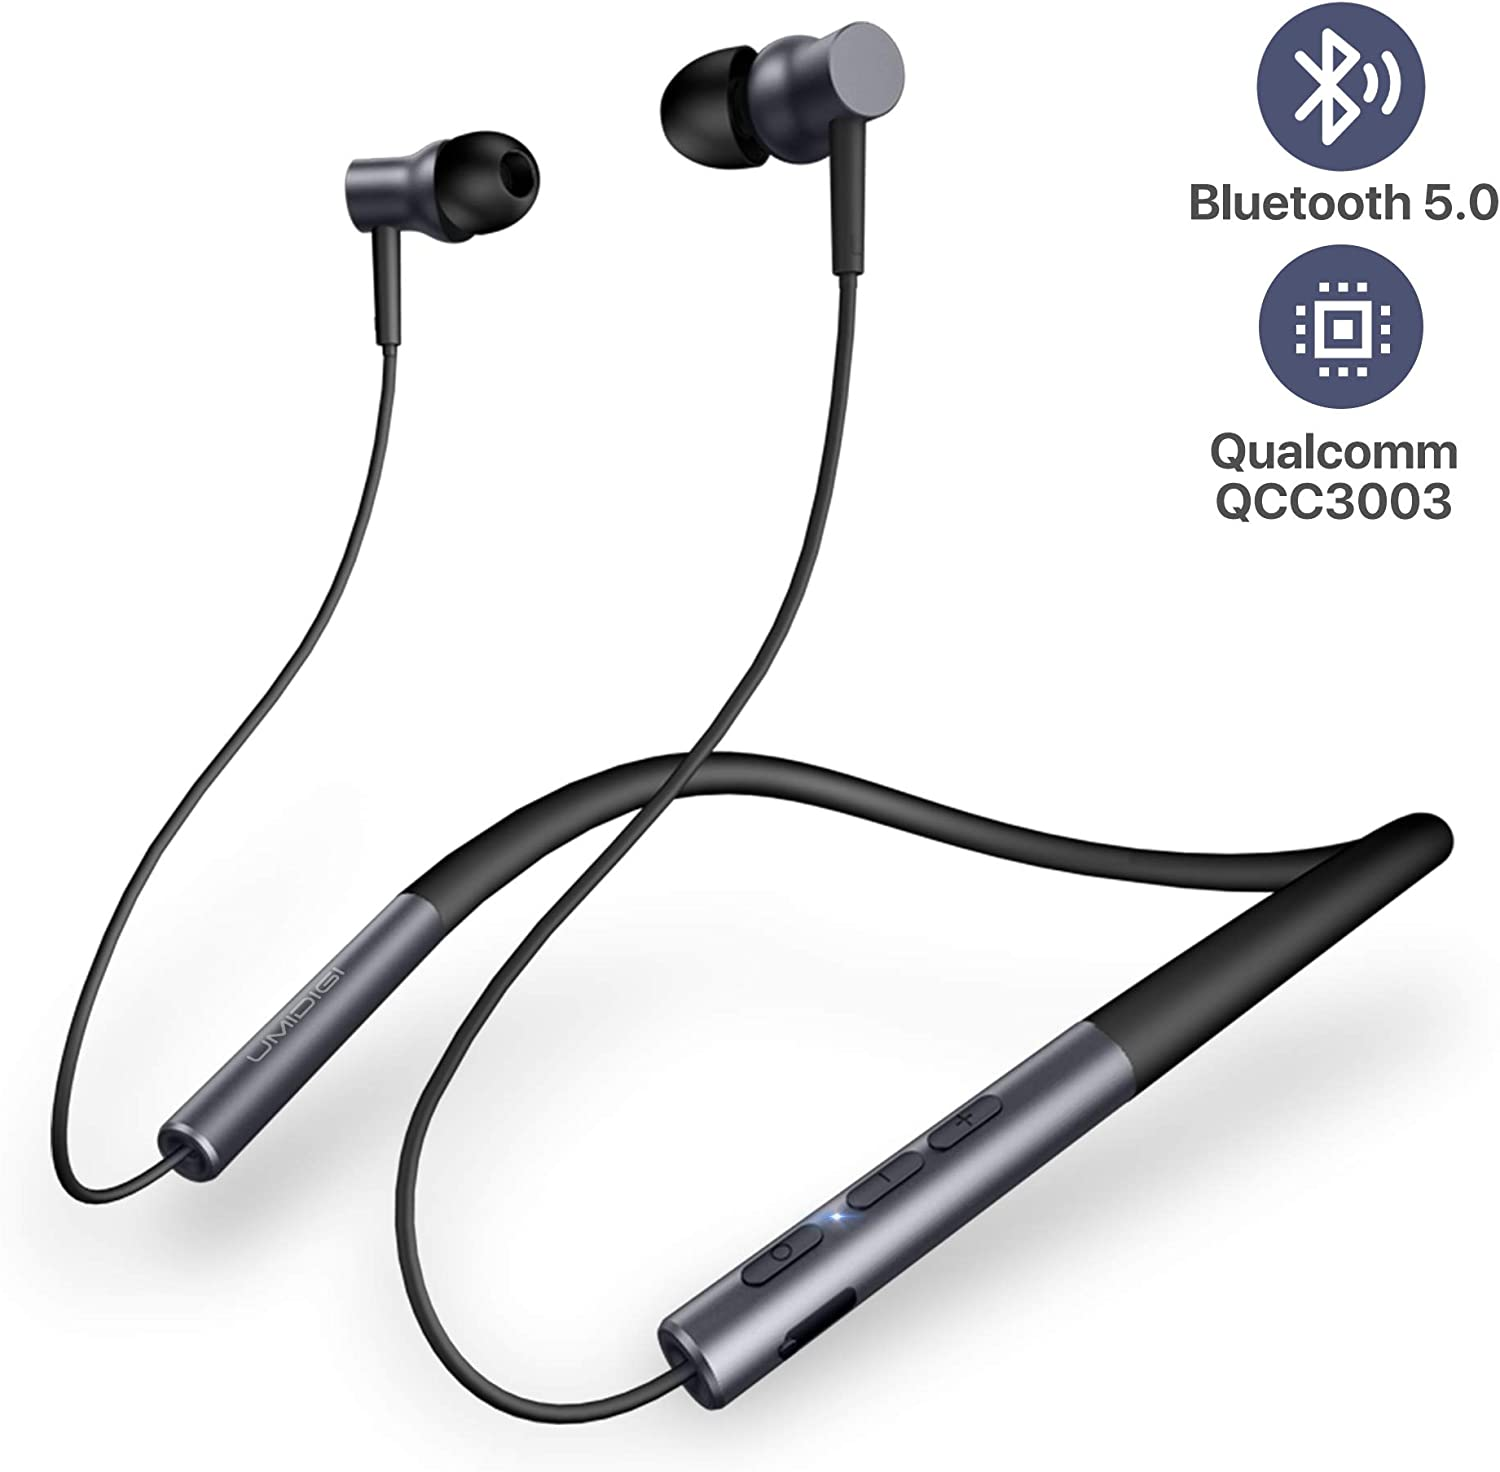 Wireless Bluetooth Headphones, UMIDIGI Neckband in-Ear Headphones, Ubeats Bluetooth 5.0 Waterproof Magnetic Earphones with Mic 12 Hours Play Time, Cvc6.0, IPX5 for Sports, Workout, Running, Gym